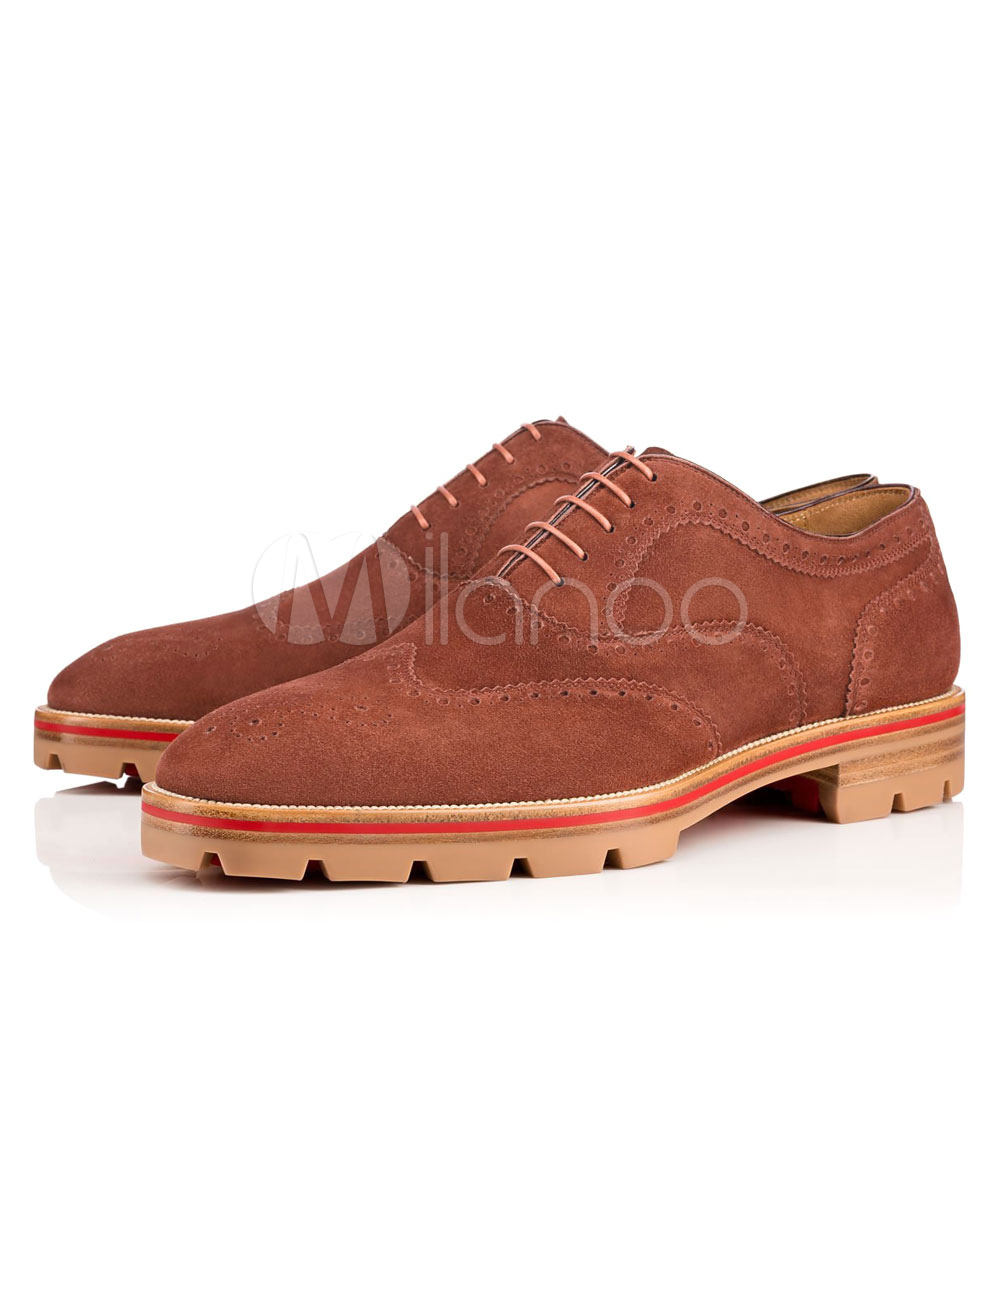 Suede Brogue Shoes Men Mahogany Squared Toe Lace Up Oxford Shoes Dress Shoes